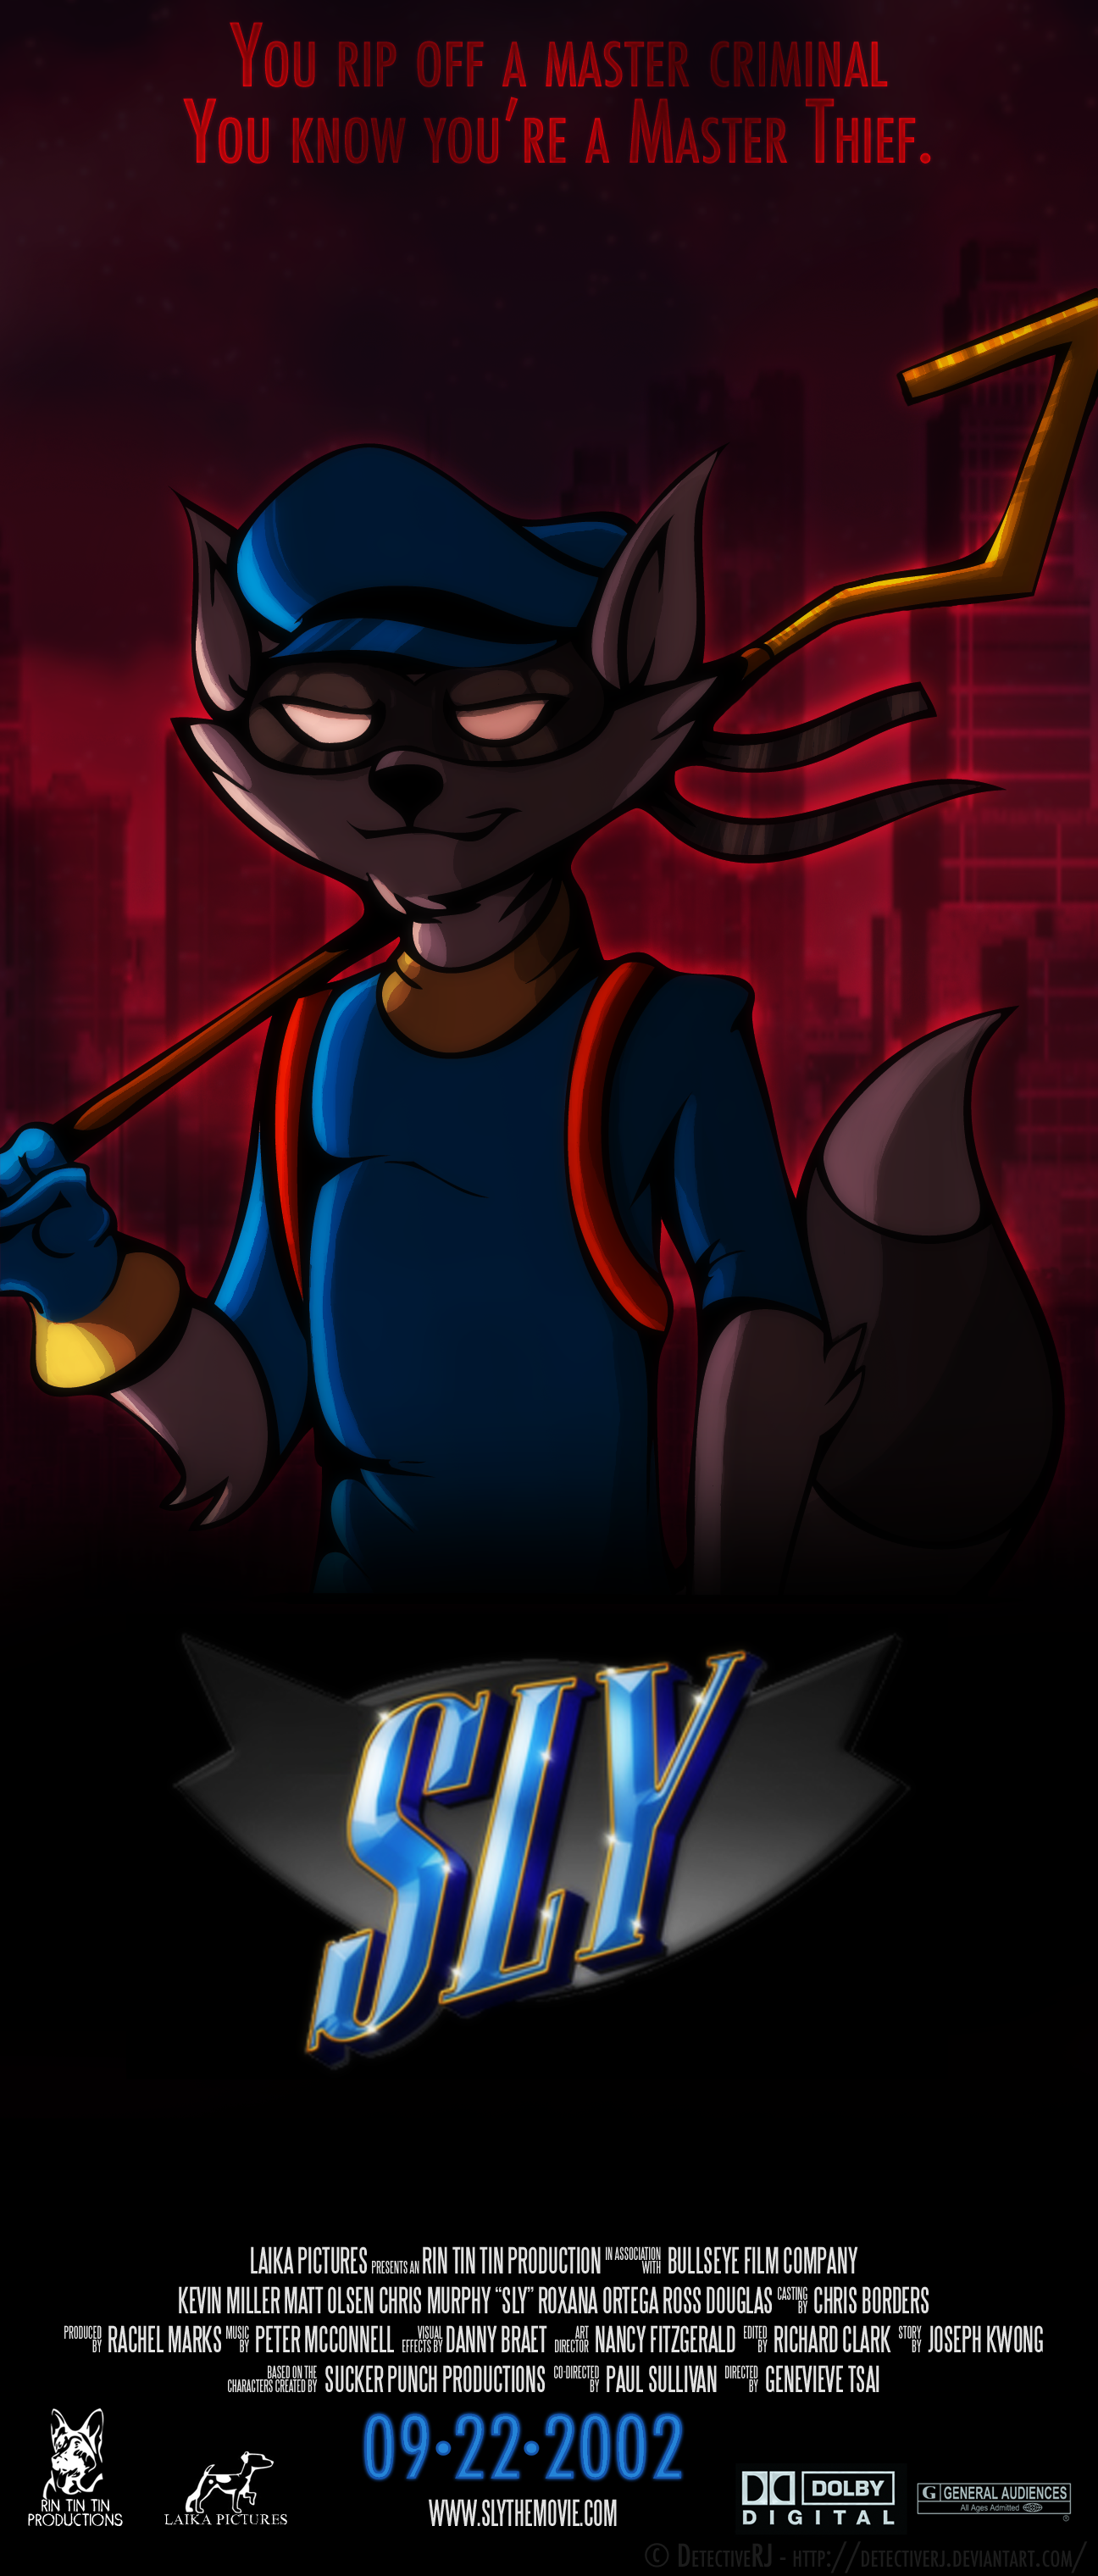 Sly Cooper The Movie Fake Poster